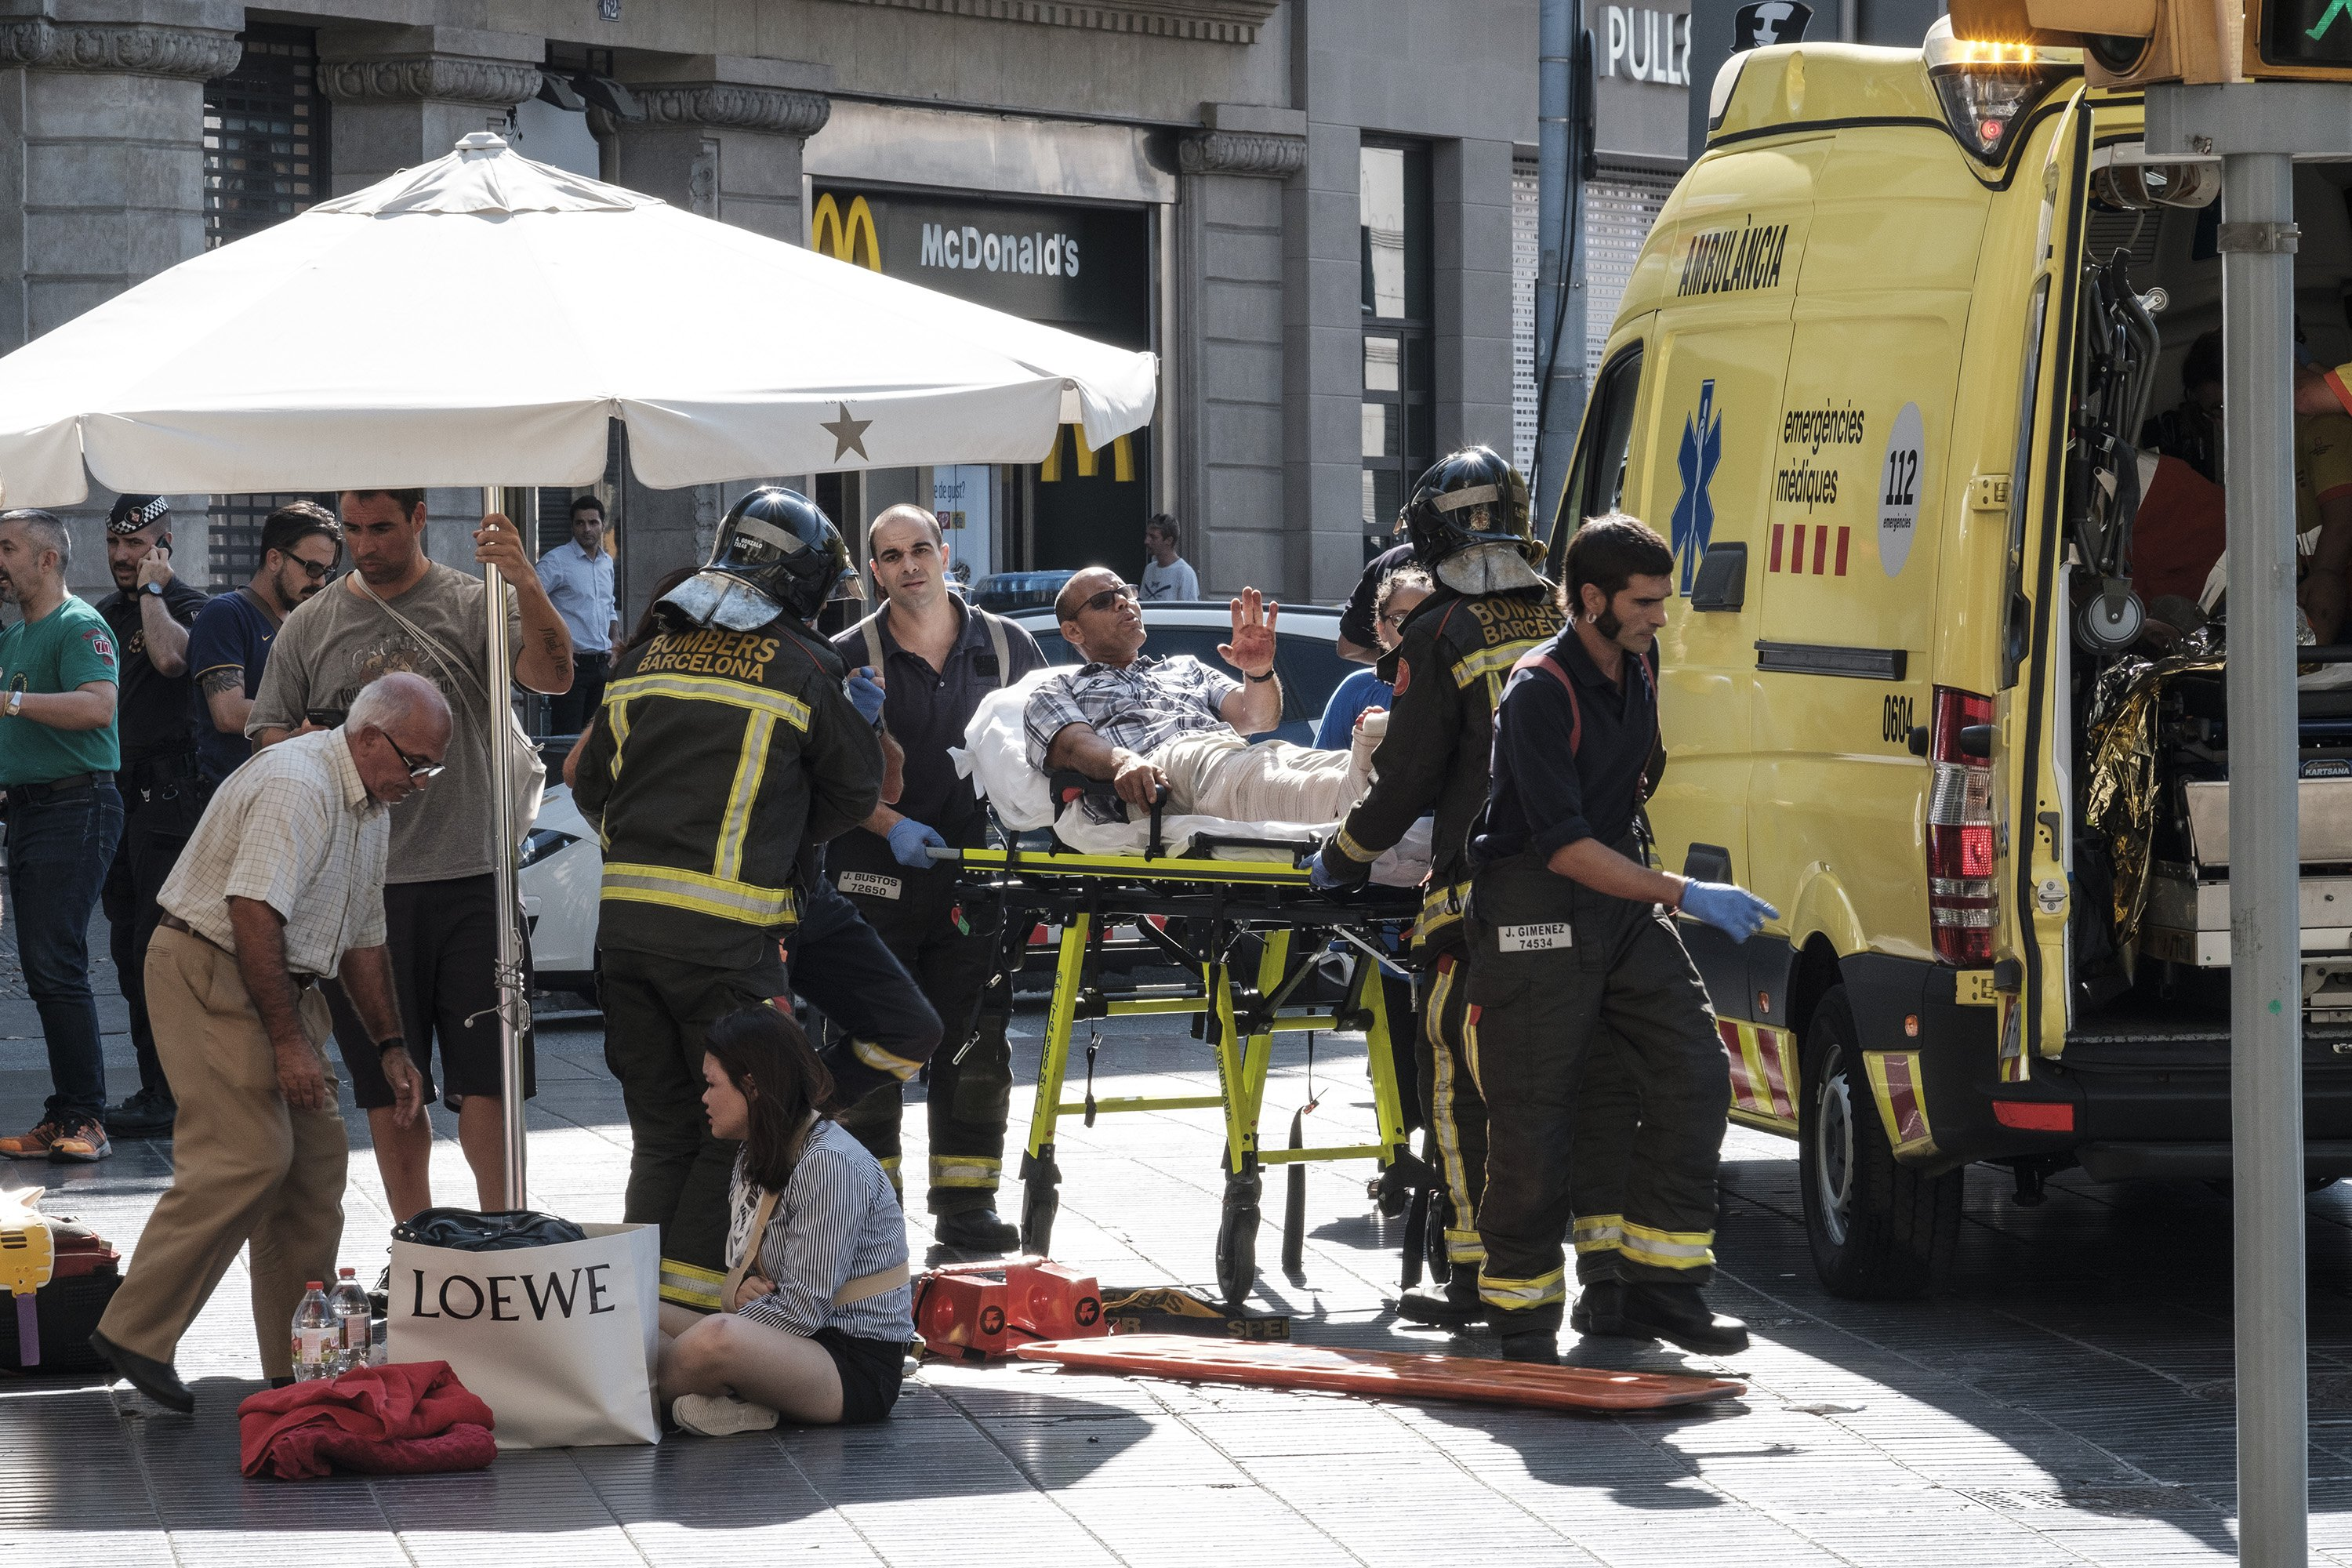 Barcelona attack: the terrorists wanted to use explosives on the Rambla